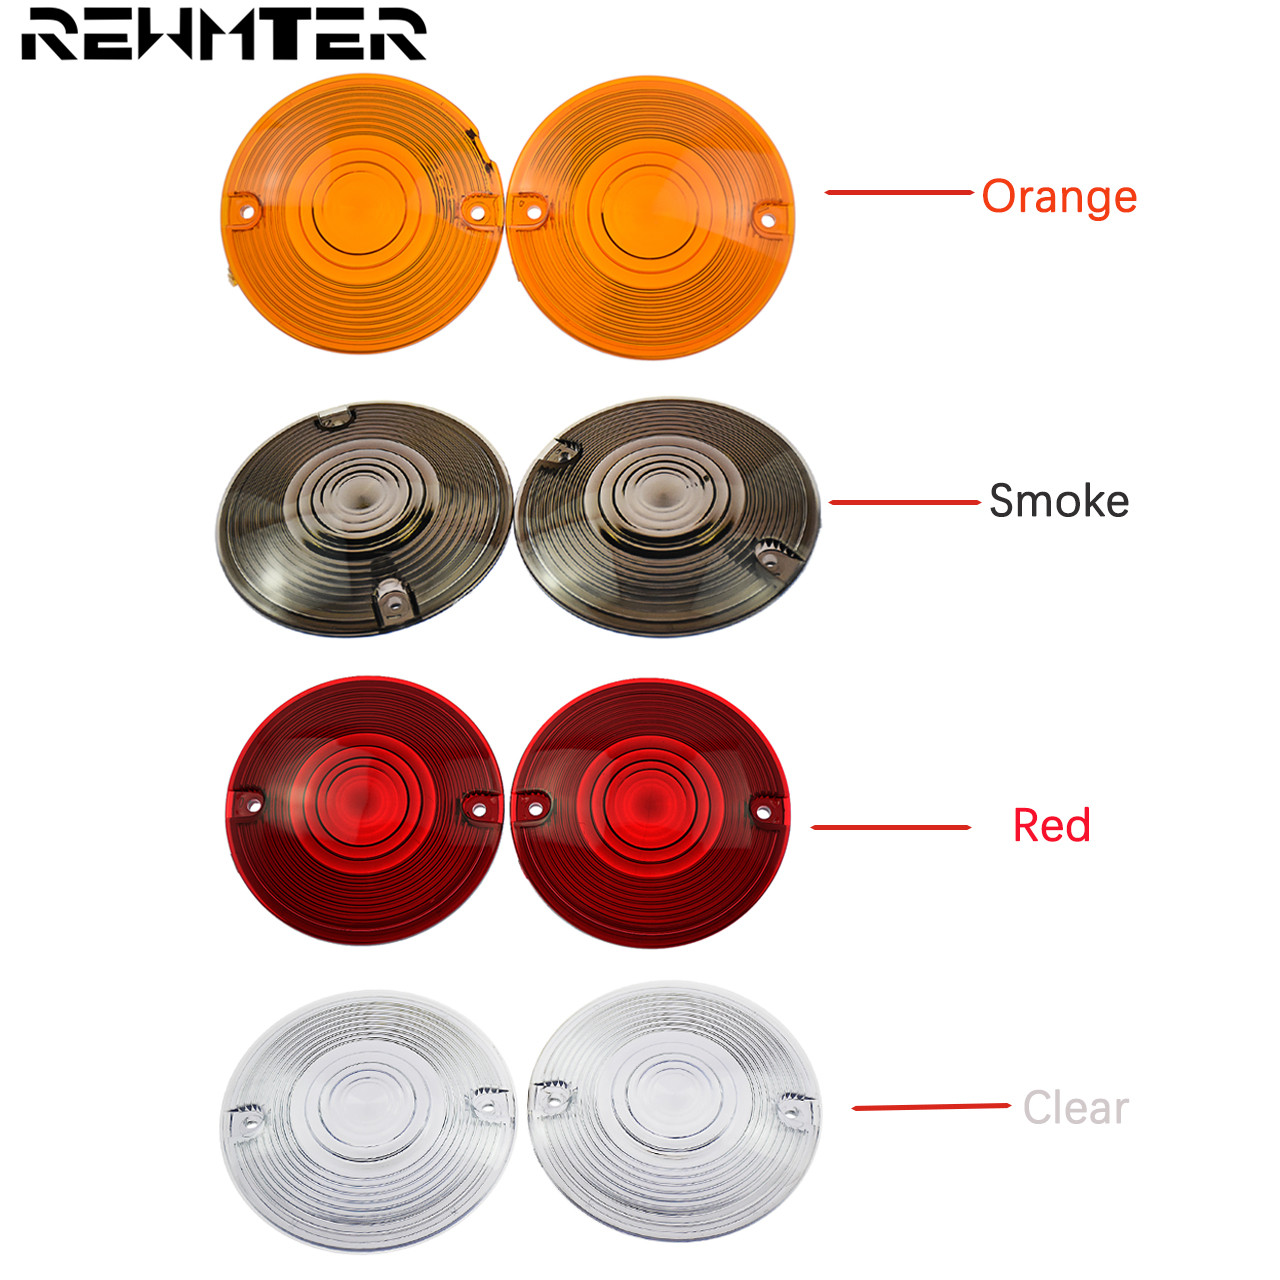 4PCS Motorcycle Turn Signal Light Lens Cover Headlight Covers Orange Smoke Red Clear For Harley Touring Softail Road King FLTR